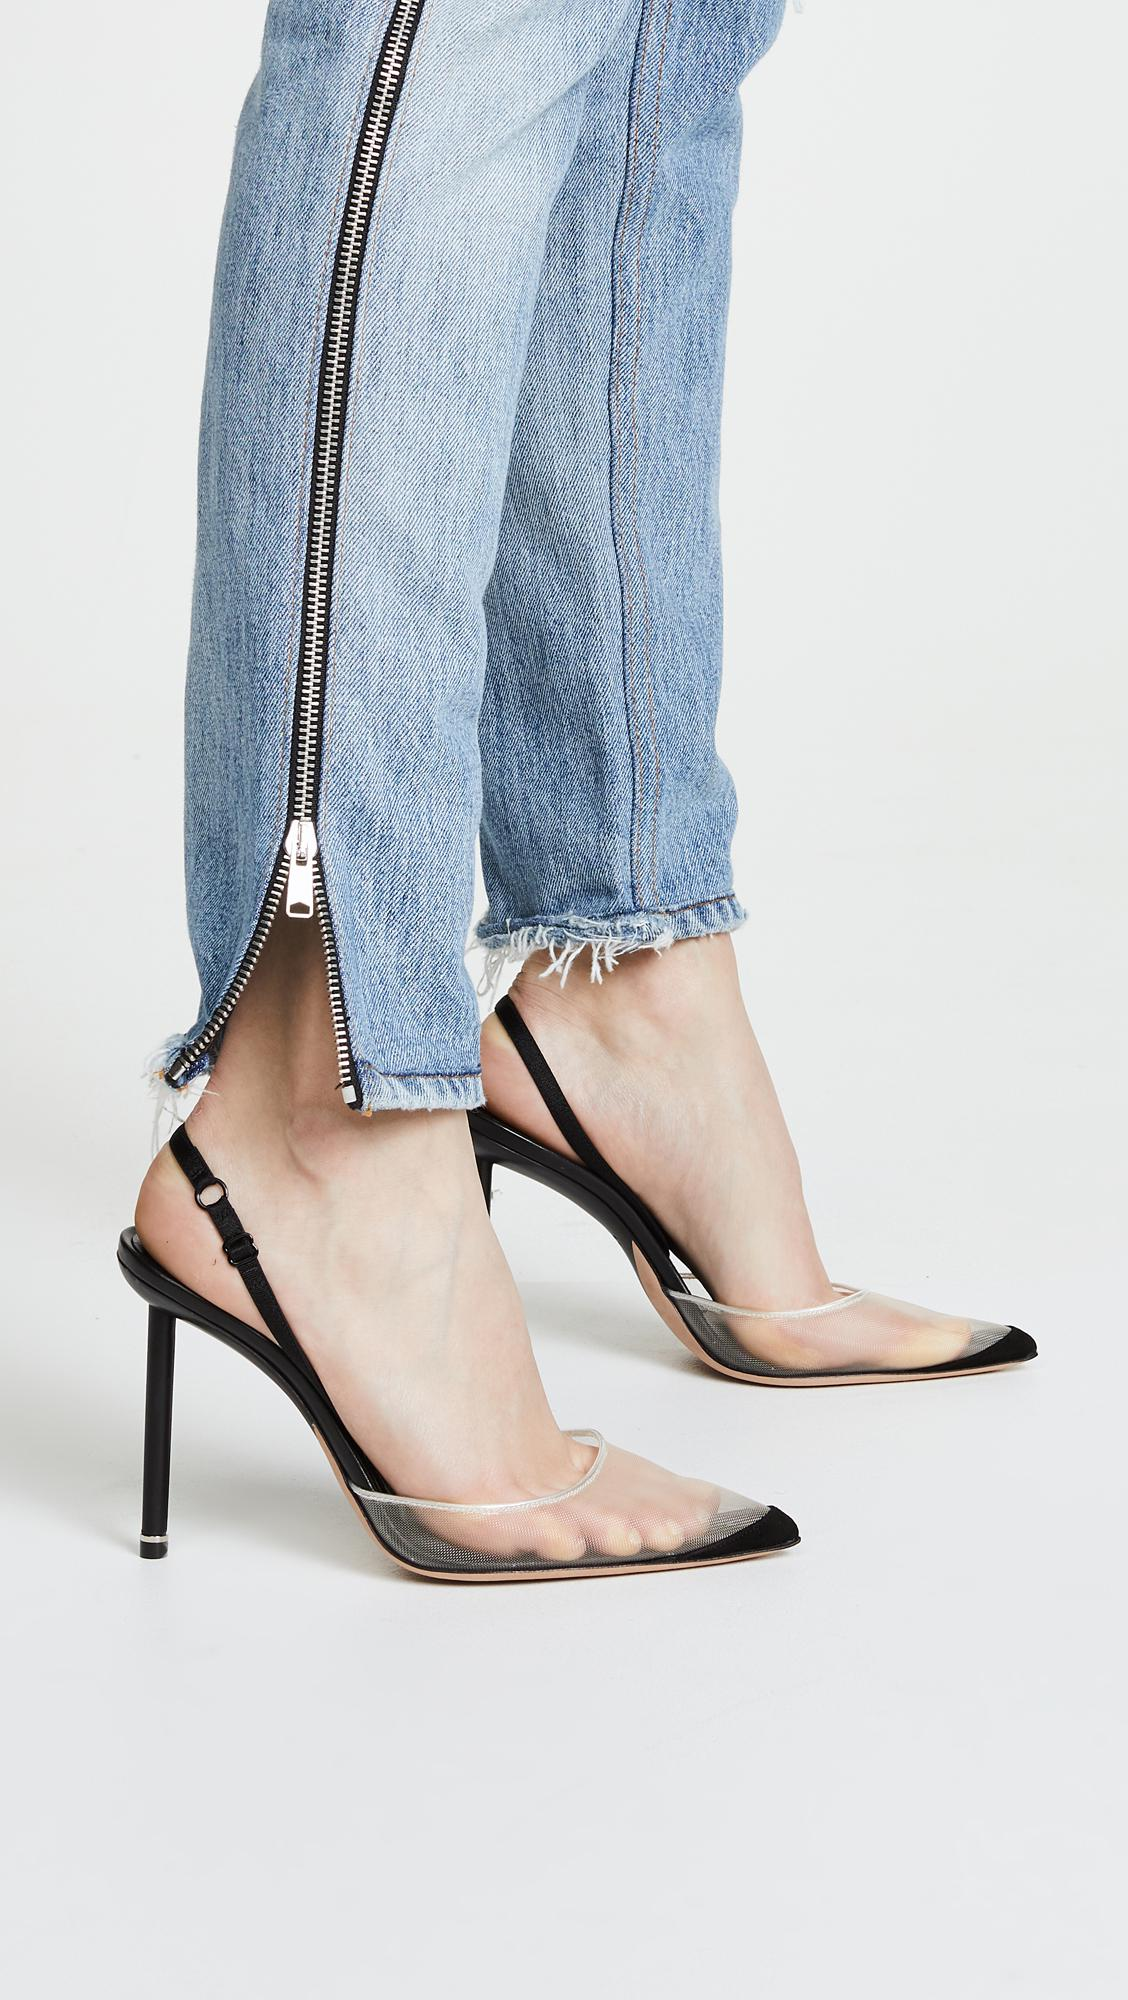 00480e736c2 Alexander Wang Black Alix High Heel Slingback Pumps